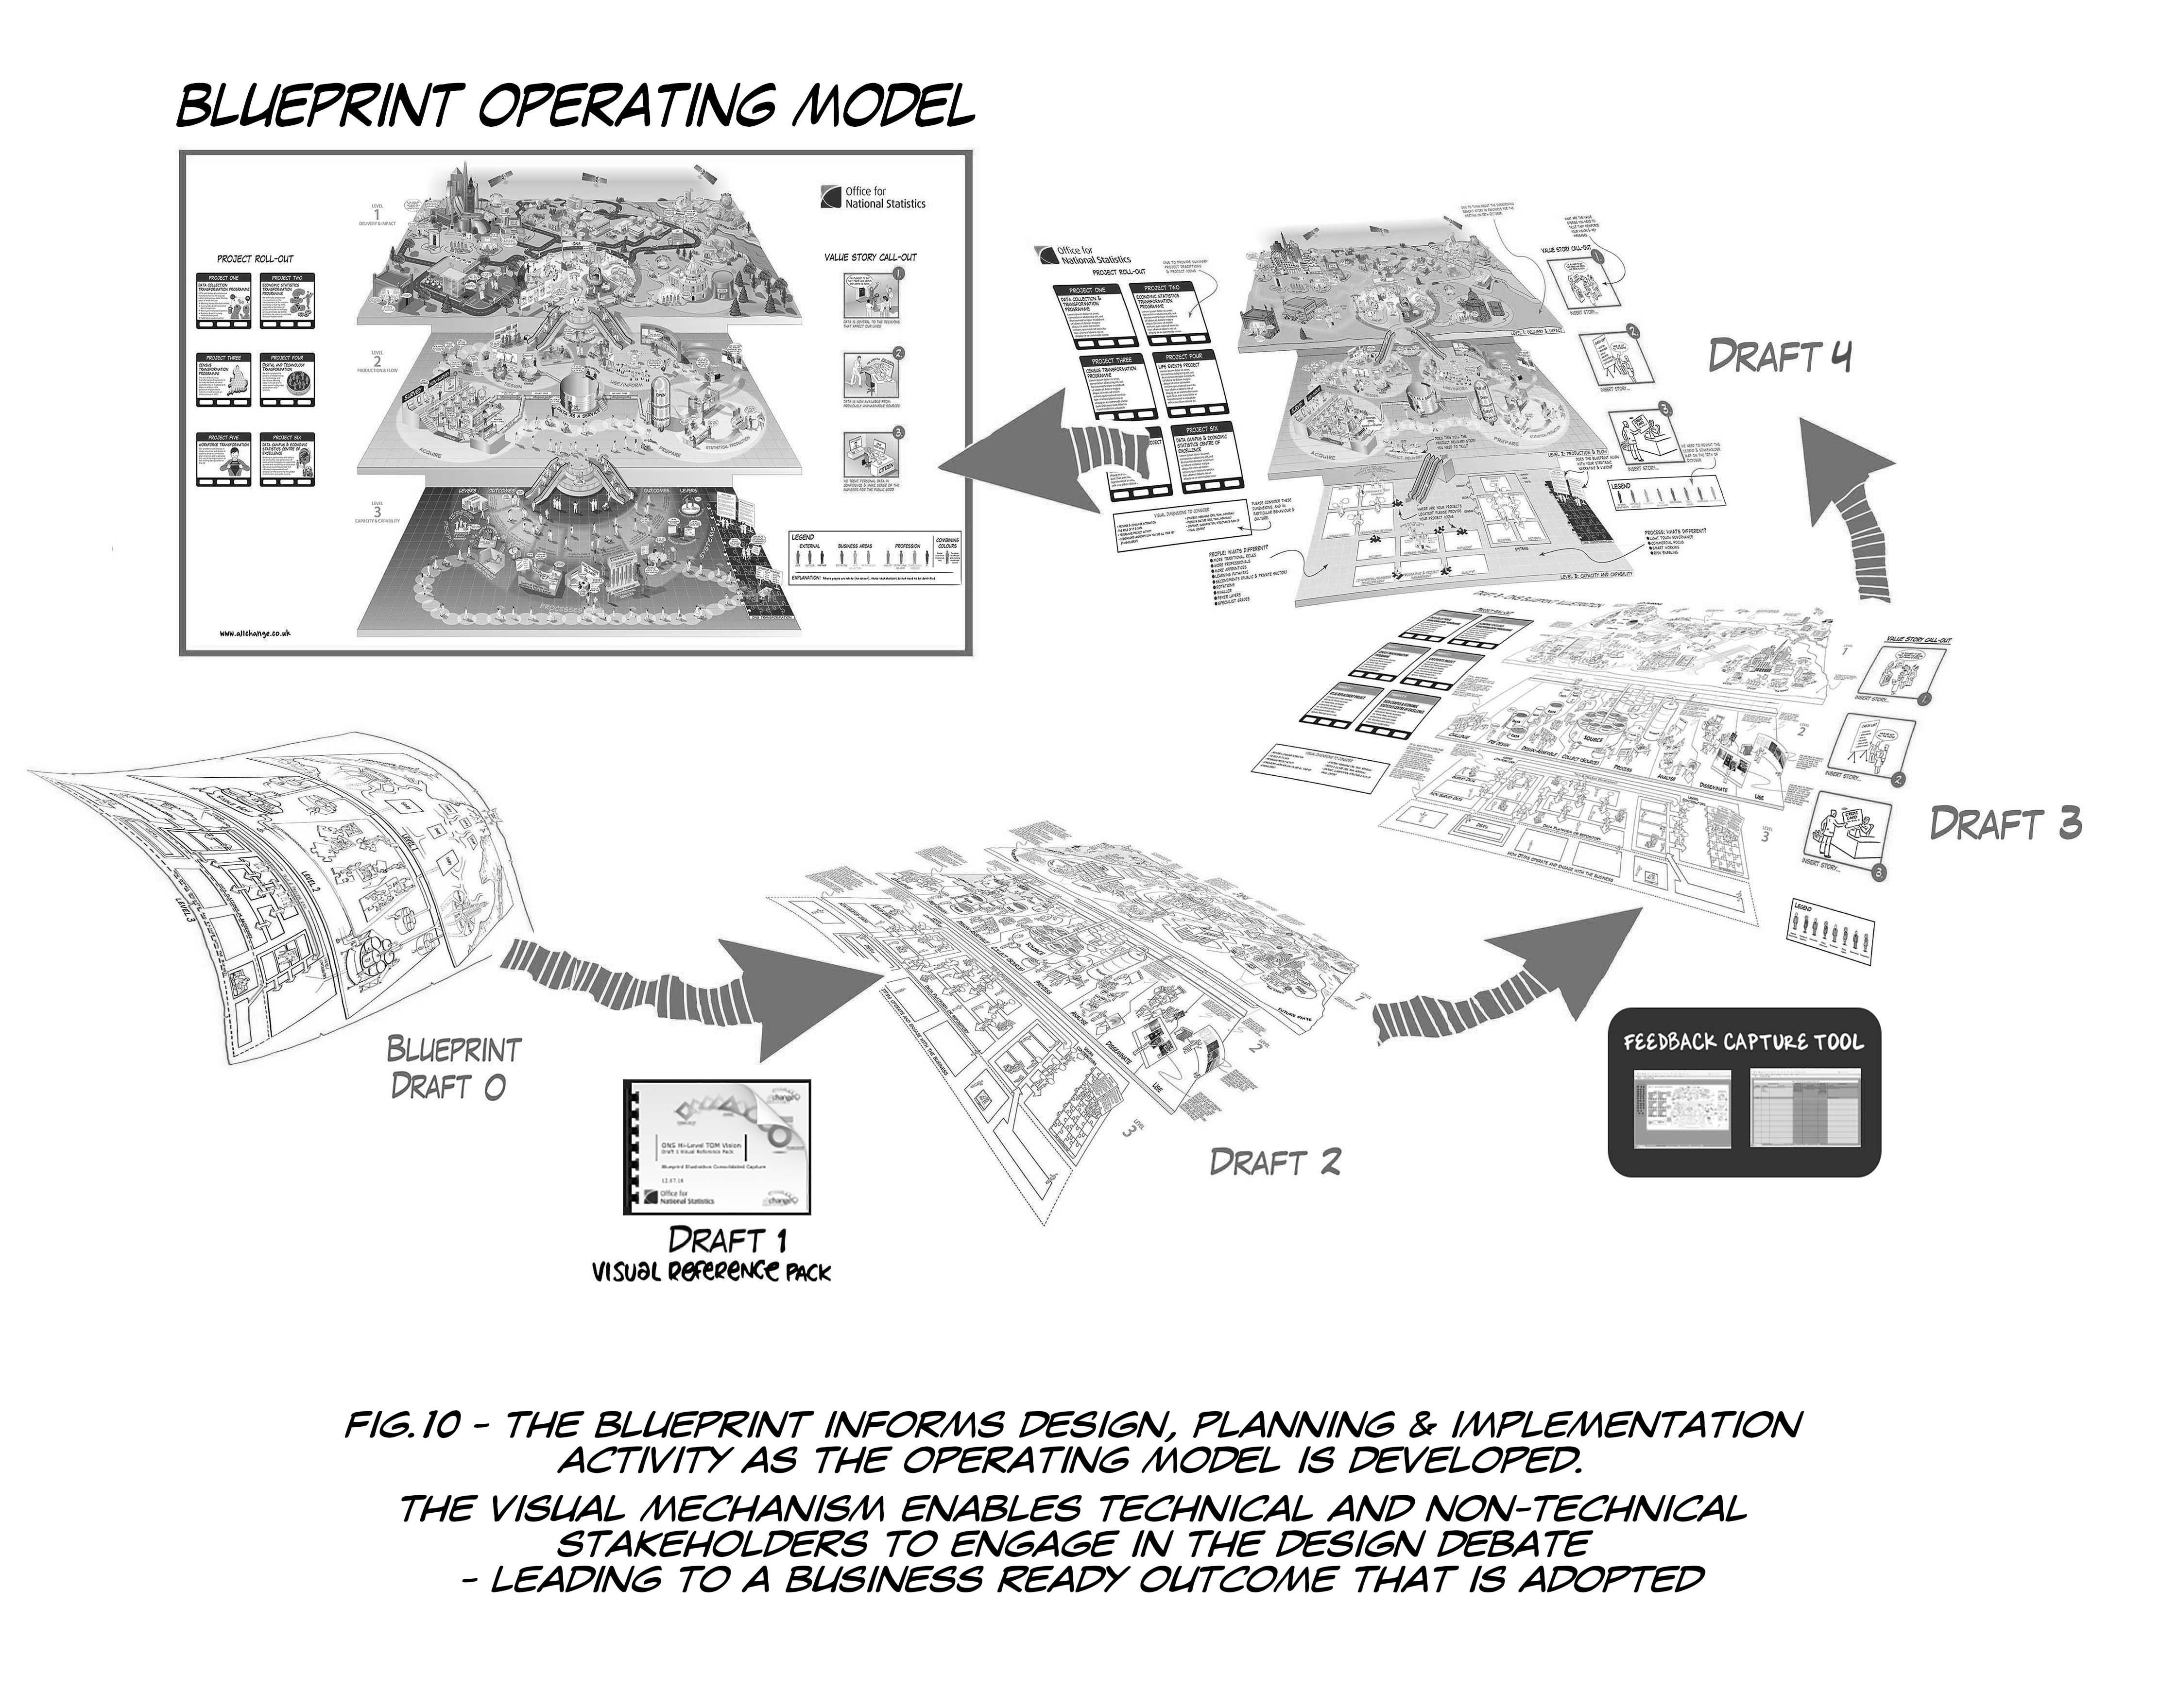 Network Operating Model: How To Design, Build & Embed An